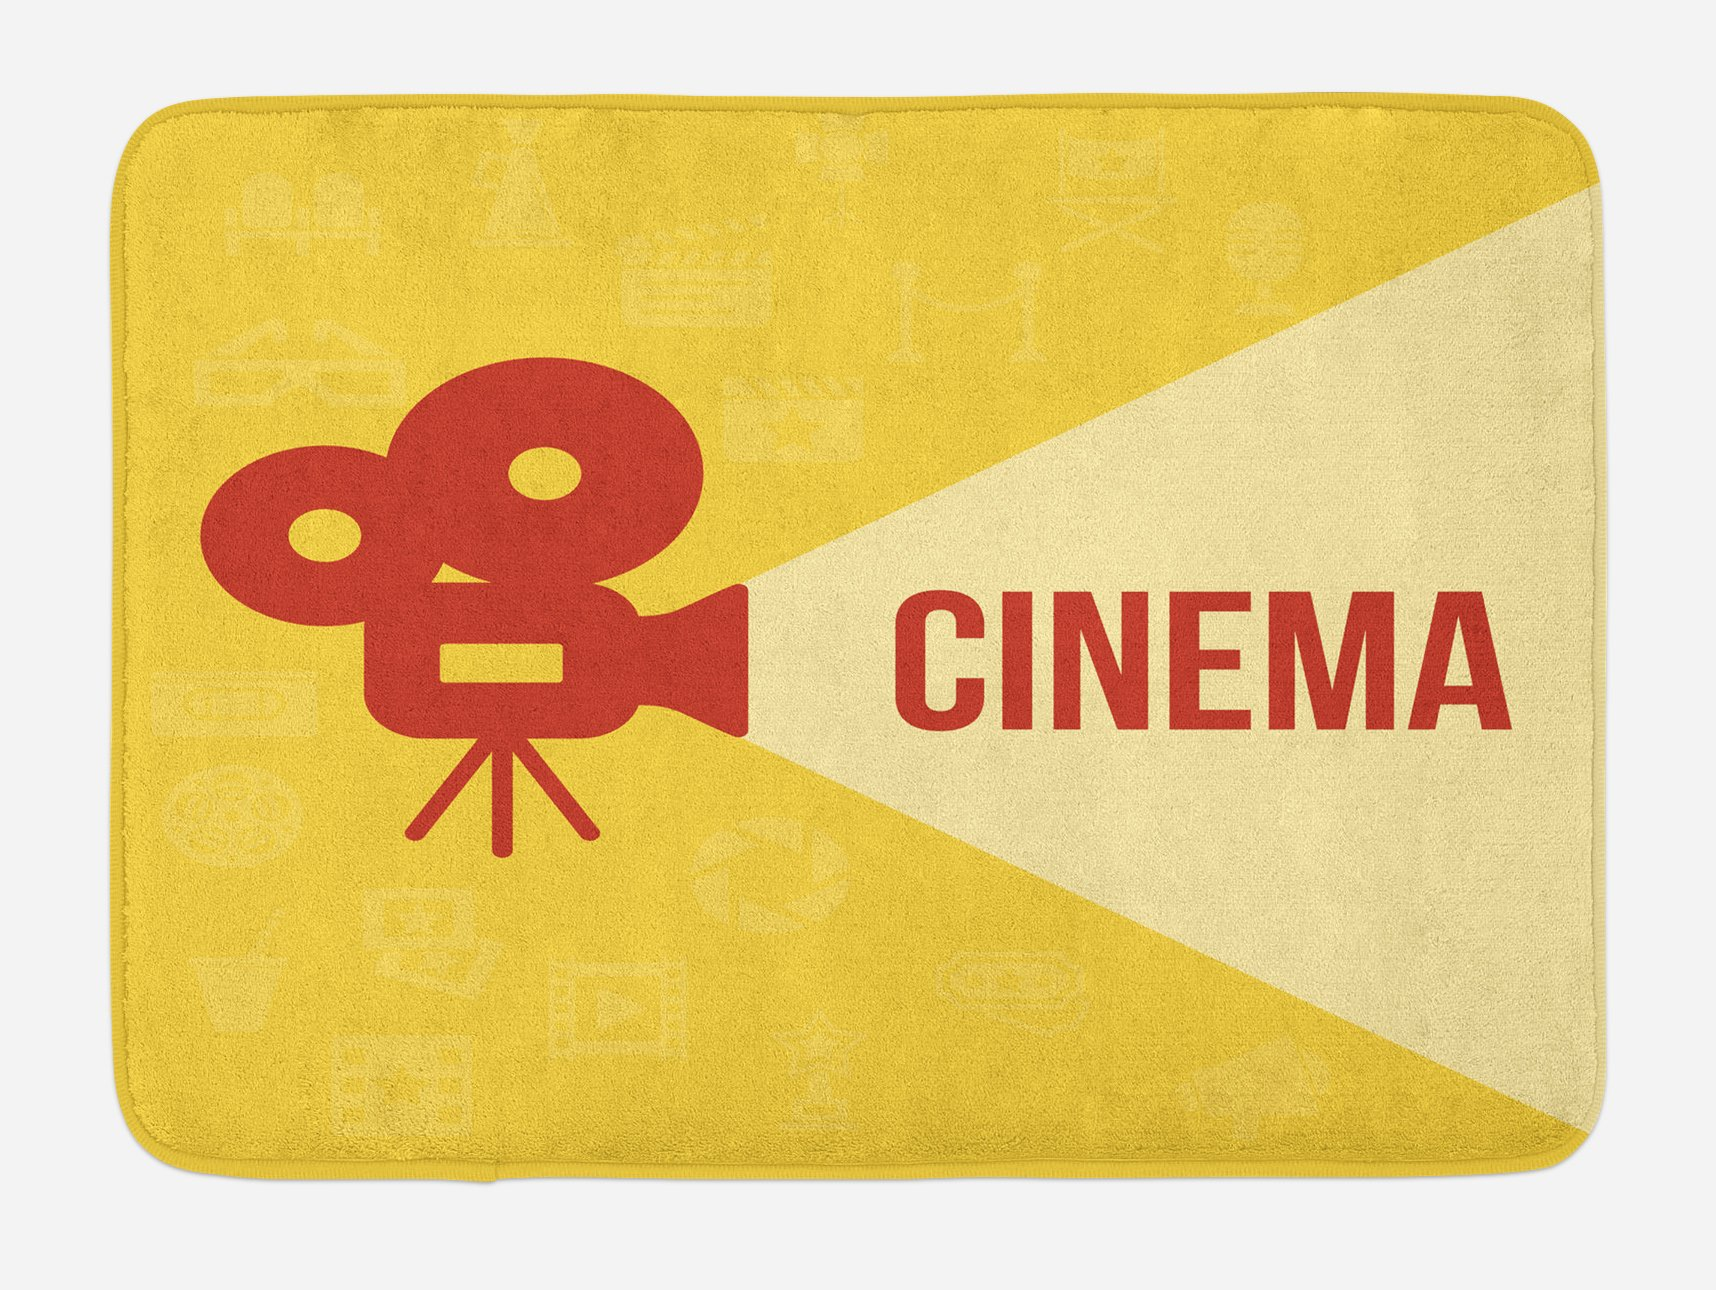 Ambesonne Movie Theater Bath Mat, Projector Silhouette with Cinema Quote Movie Symbols Background, Plush Bathroom Decor Mat with Non Slip Backing, 29.5 W X 17.5 W Inches, Dark Coral Beige Yellow